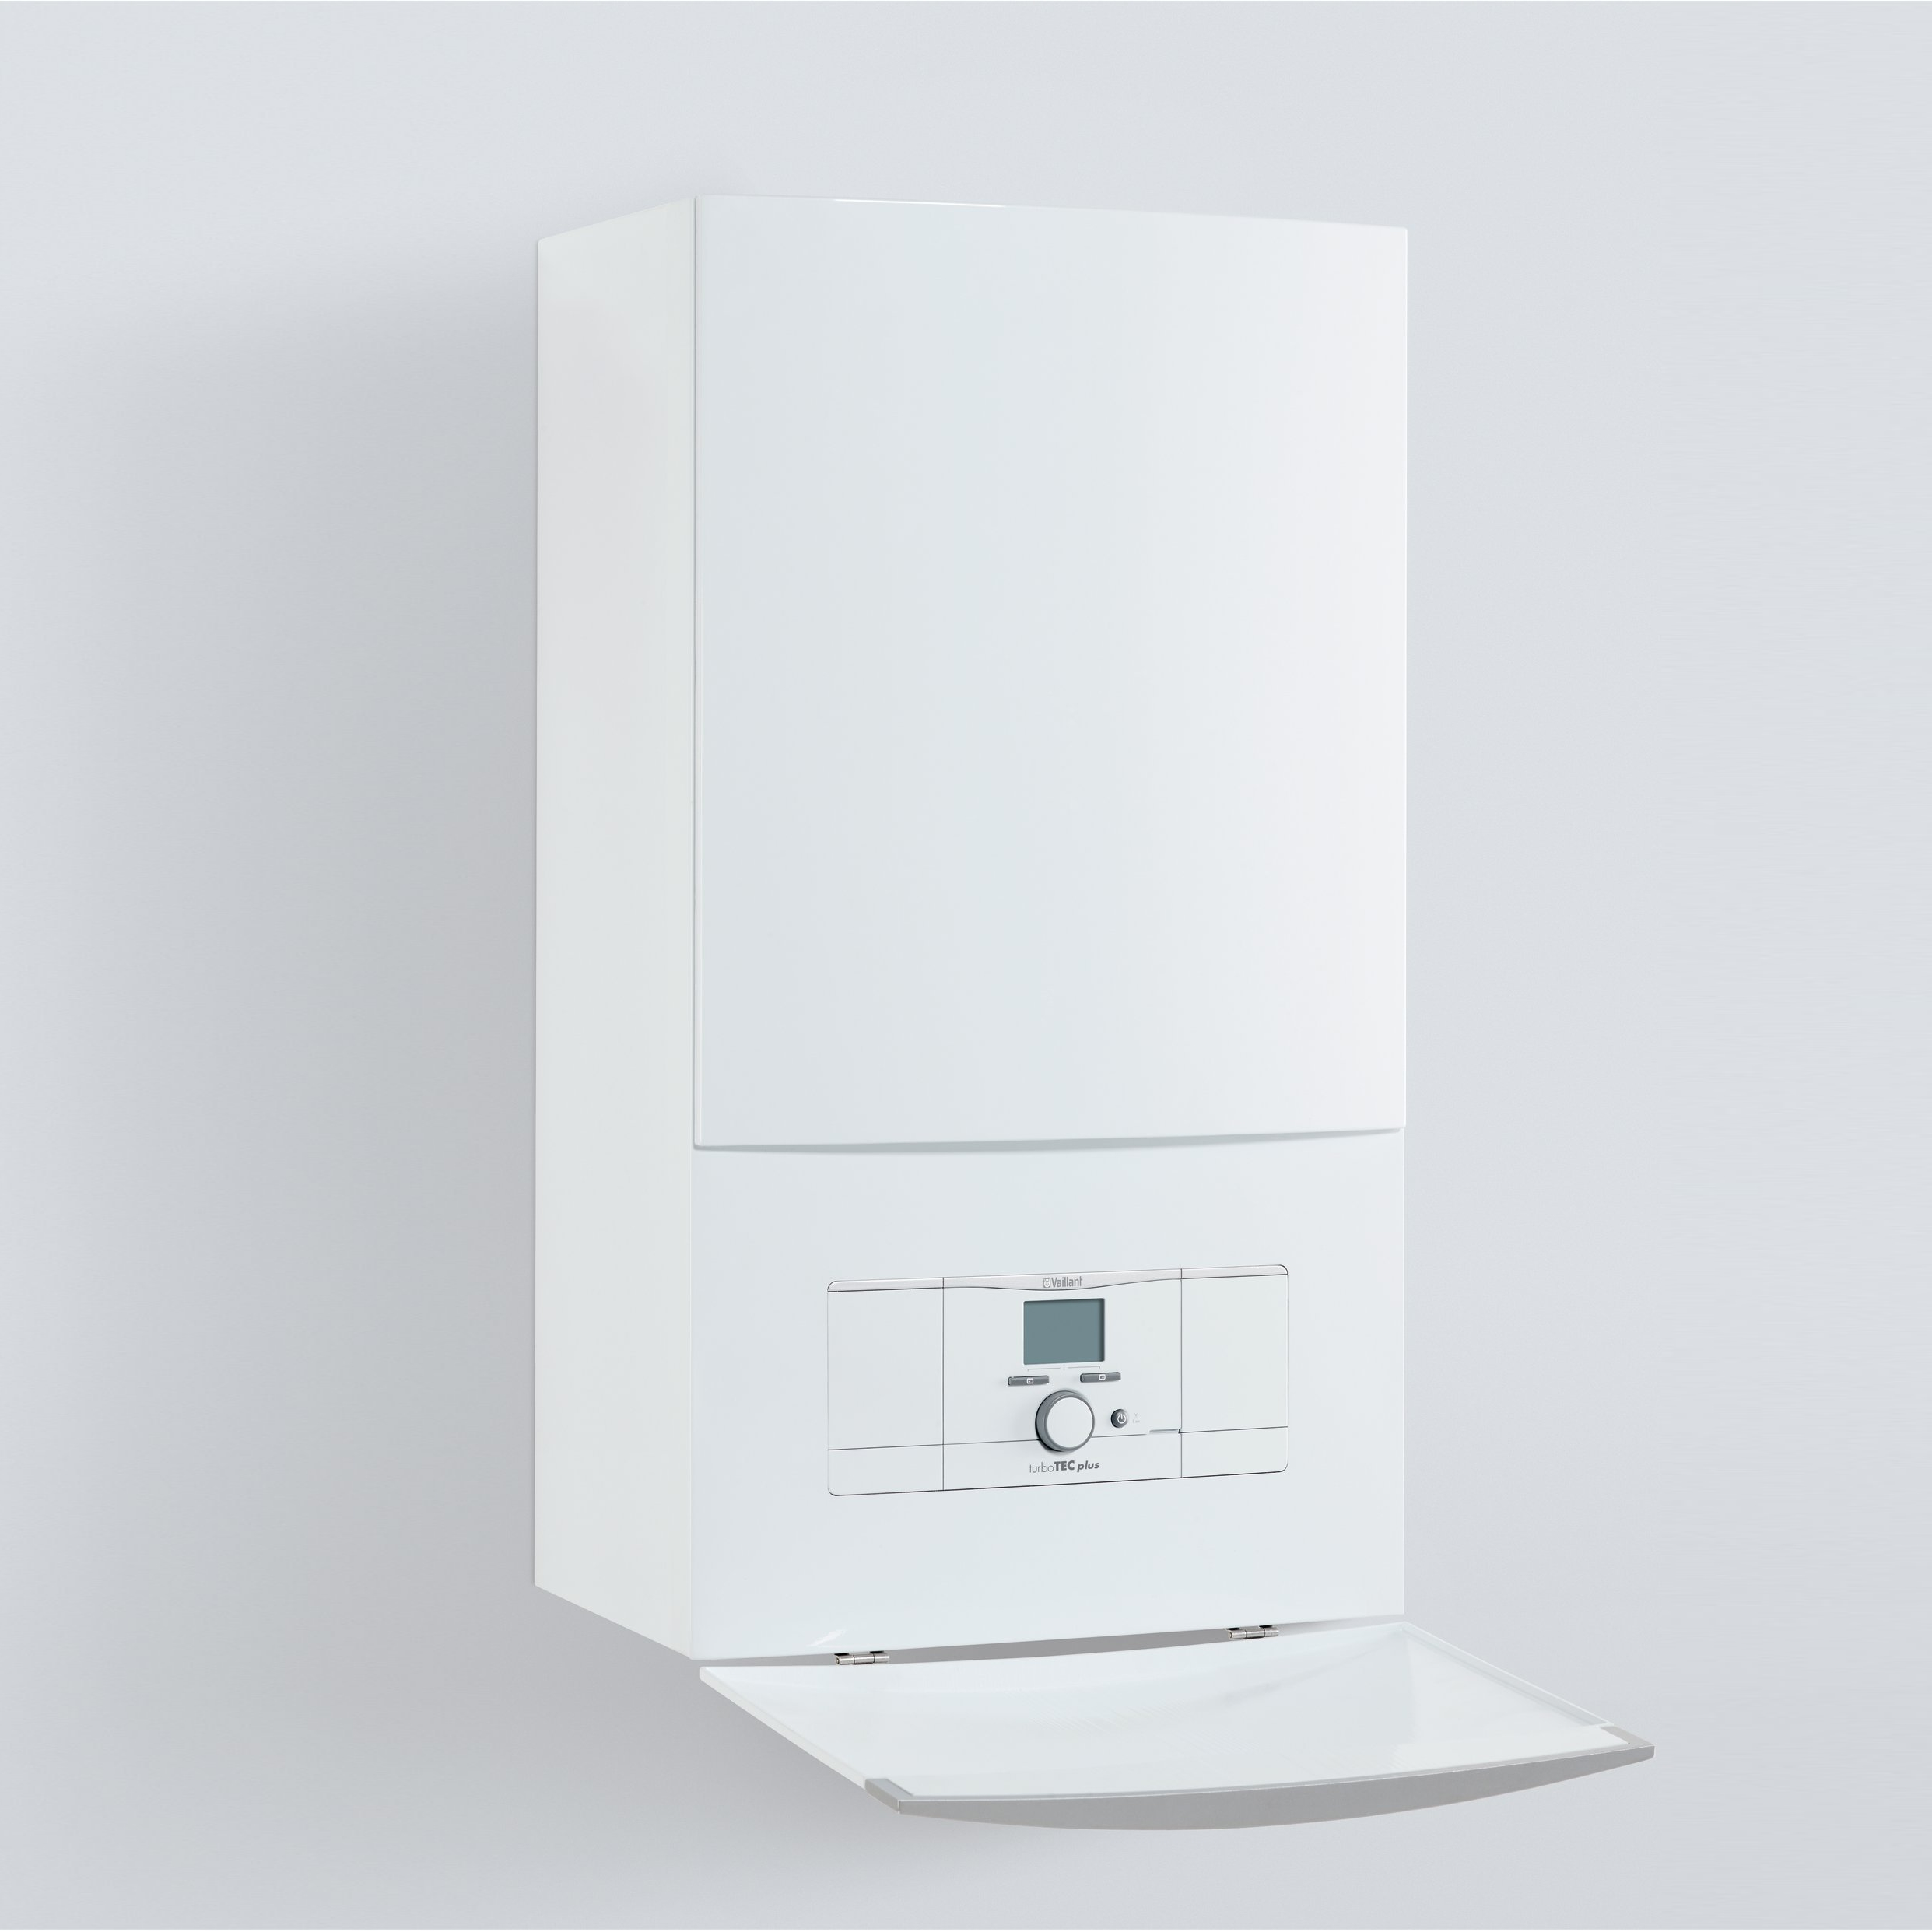 Vaillant turboTEC plus VU — СтройКлимат